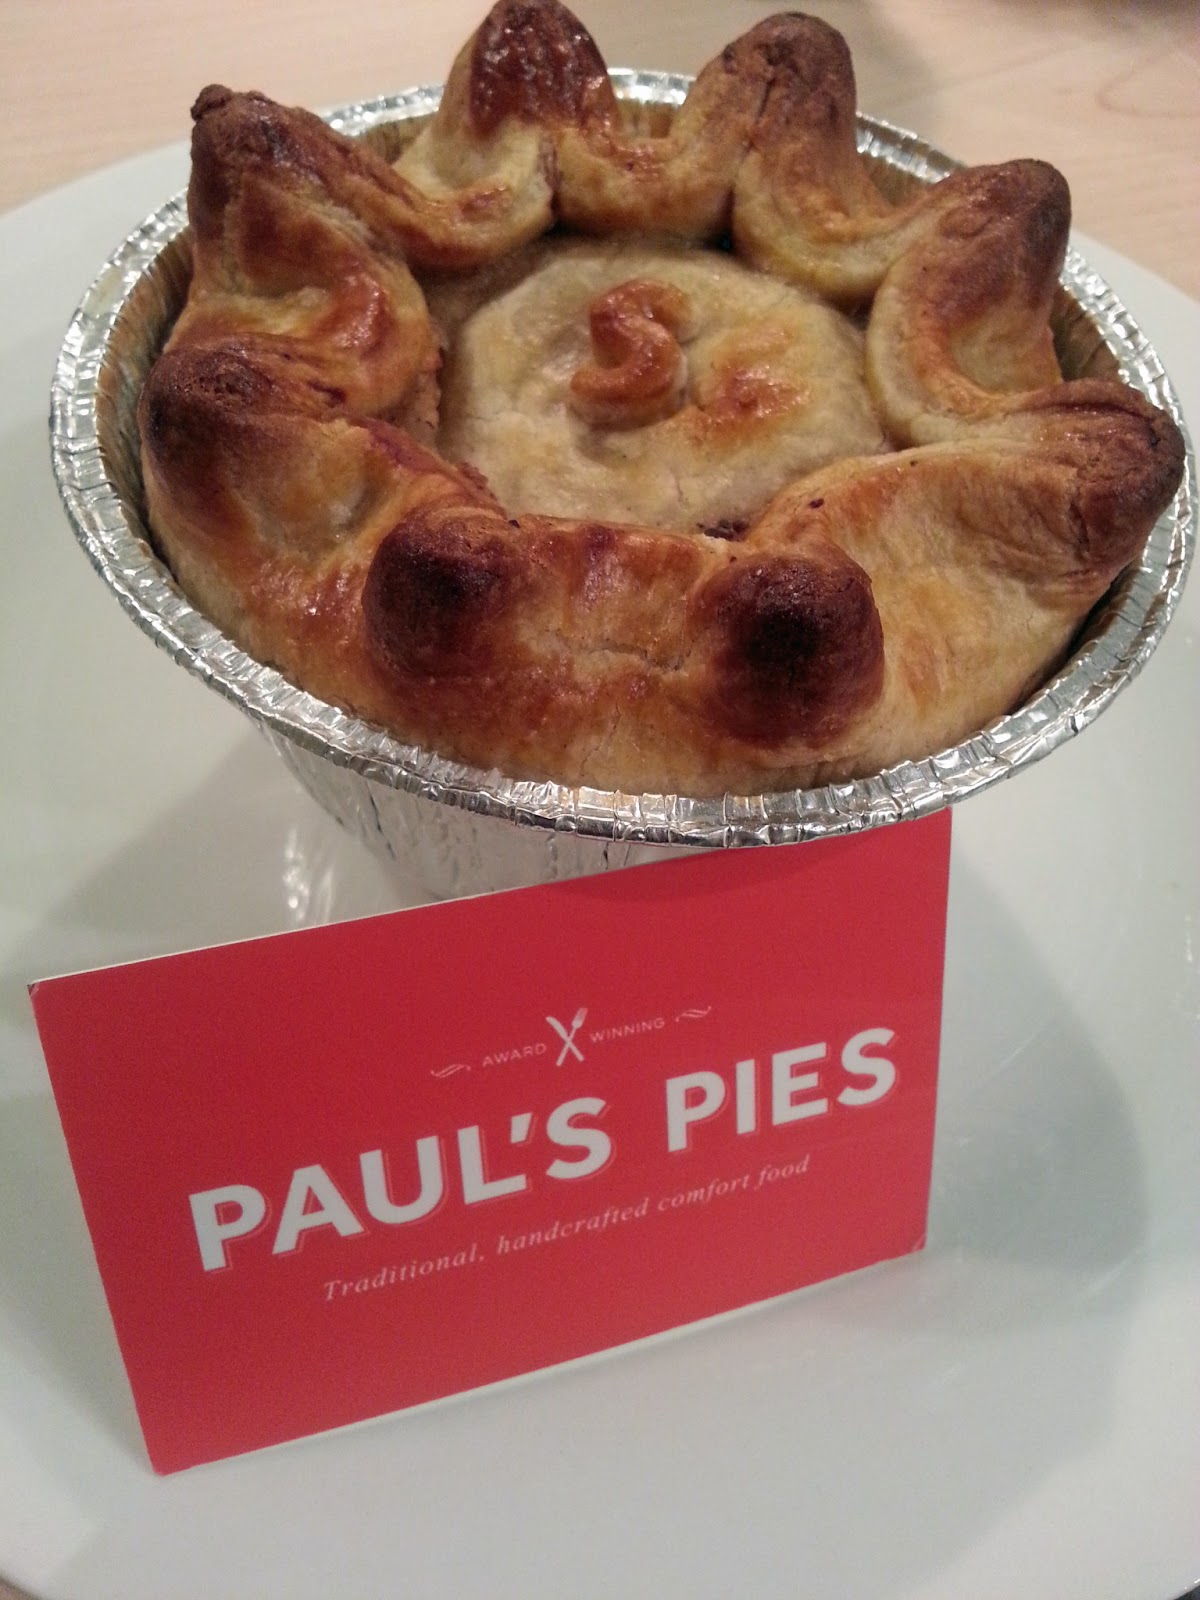 Pierate - Pie Reviews: Pies from Paul, it's Paul's Pies